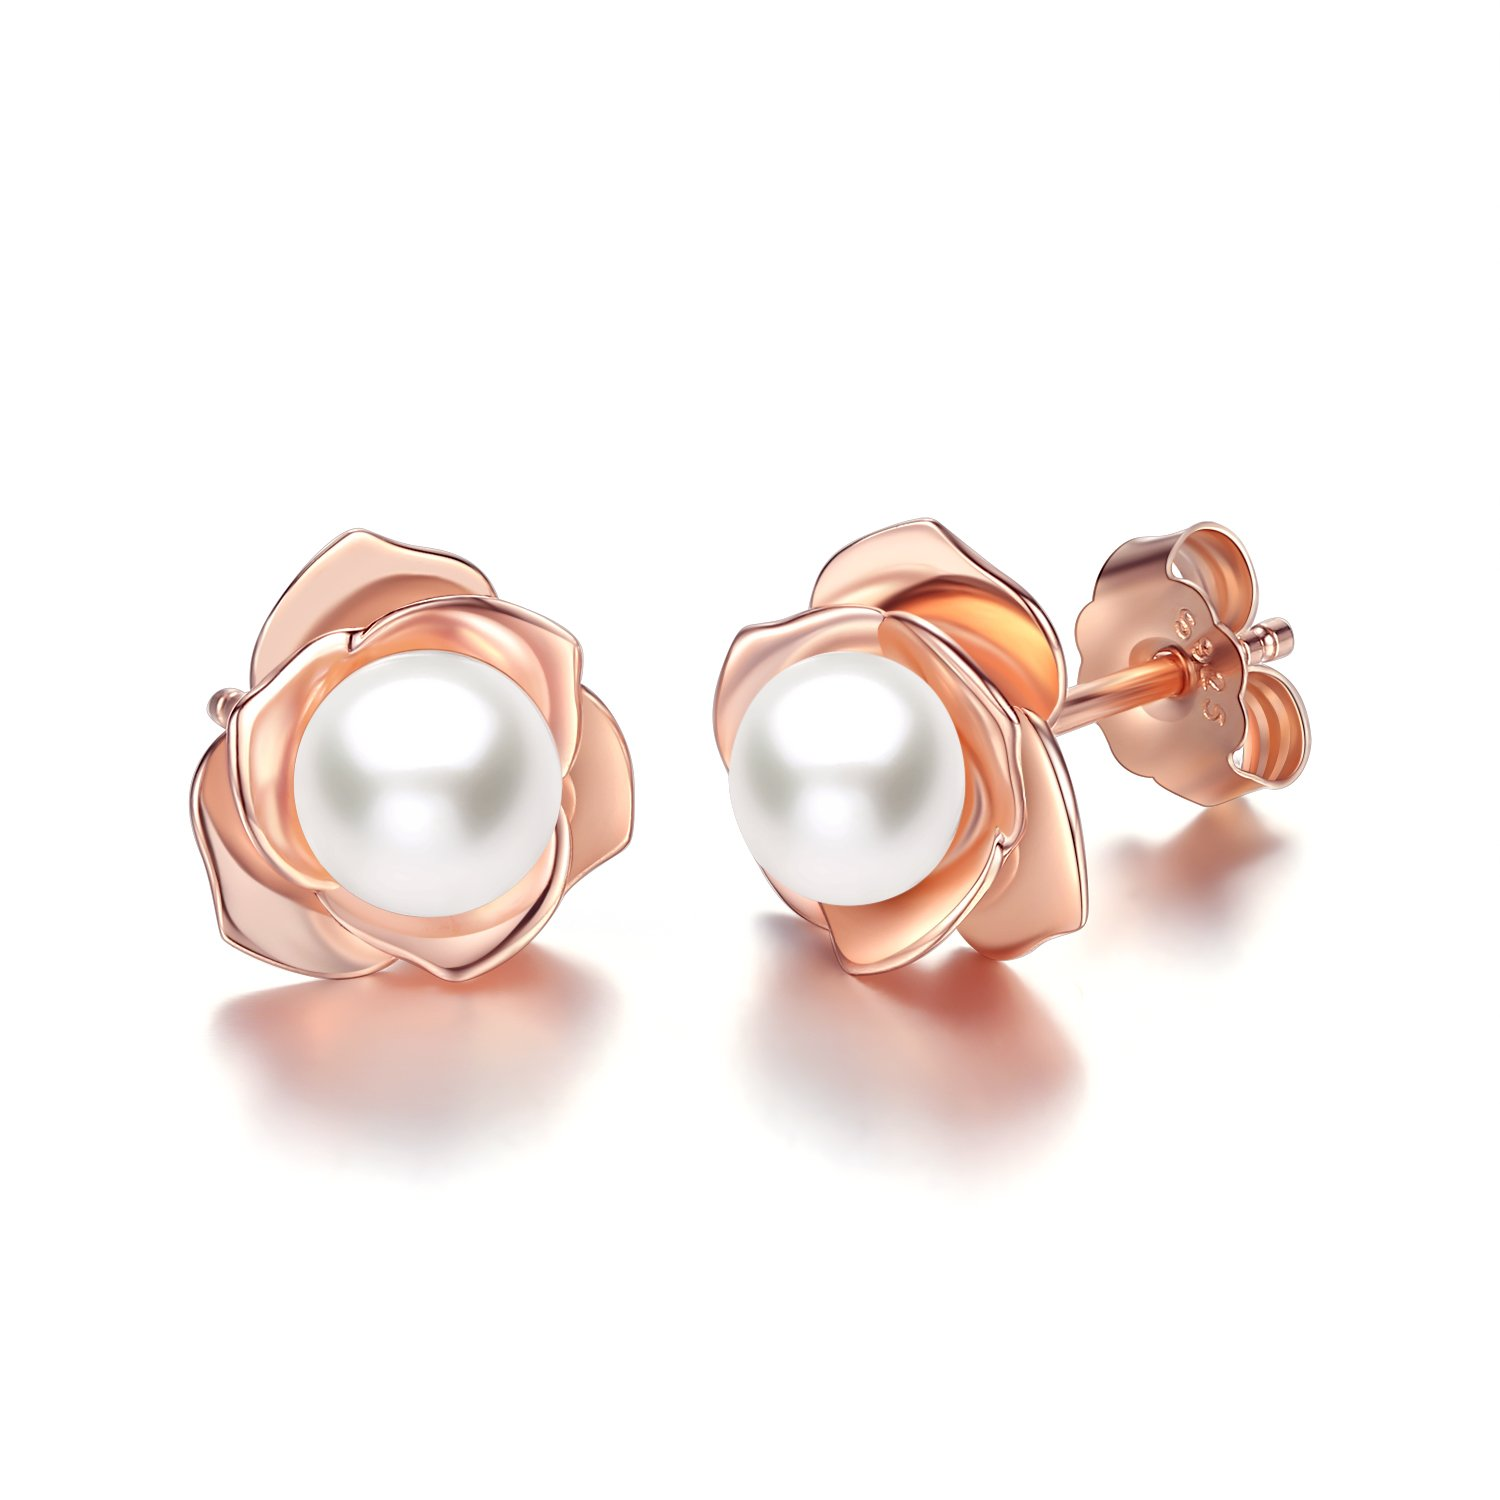 Rose Gold Plated Flower with Freshwater Cultured Pearl Stud Earrings for Women Girls